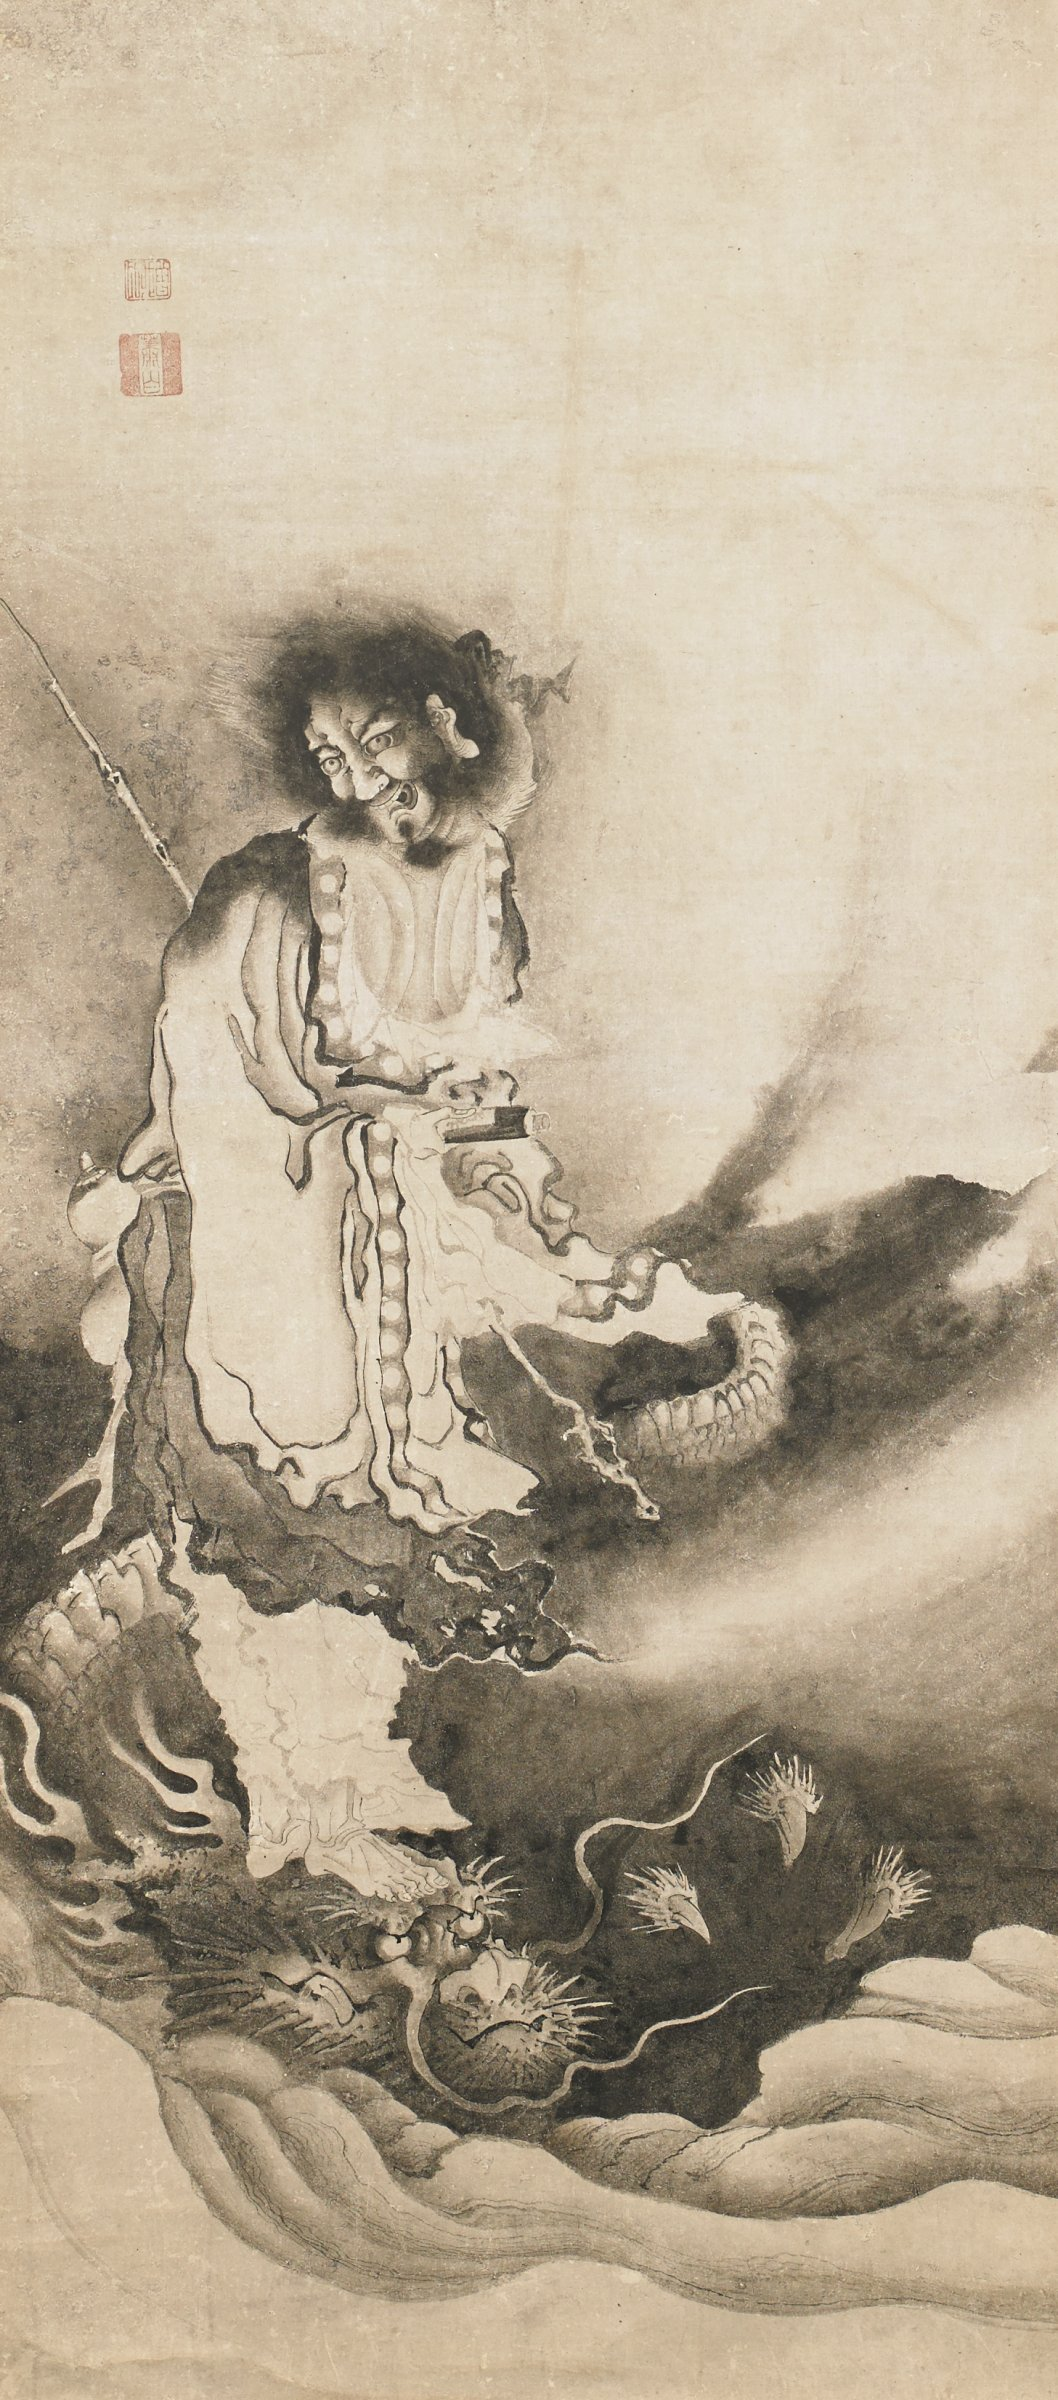 Meinju on a Dragon, Attributed to Soga Shohaku, ink on paper